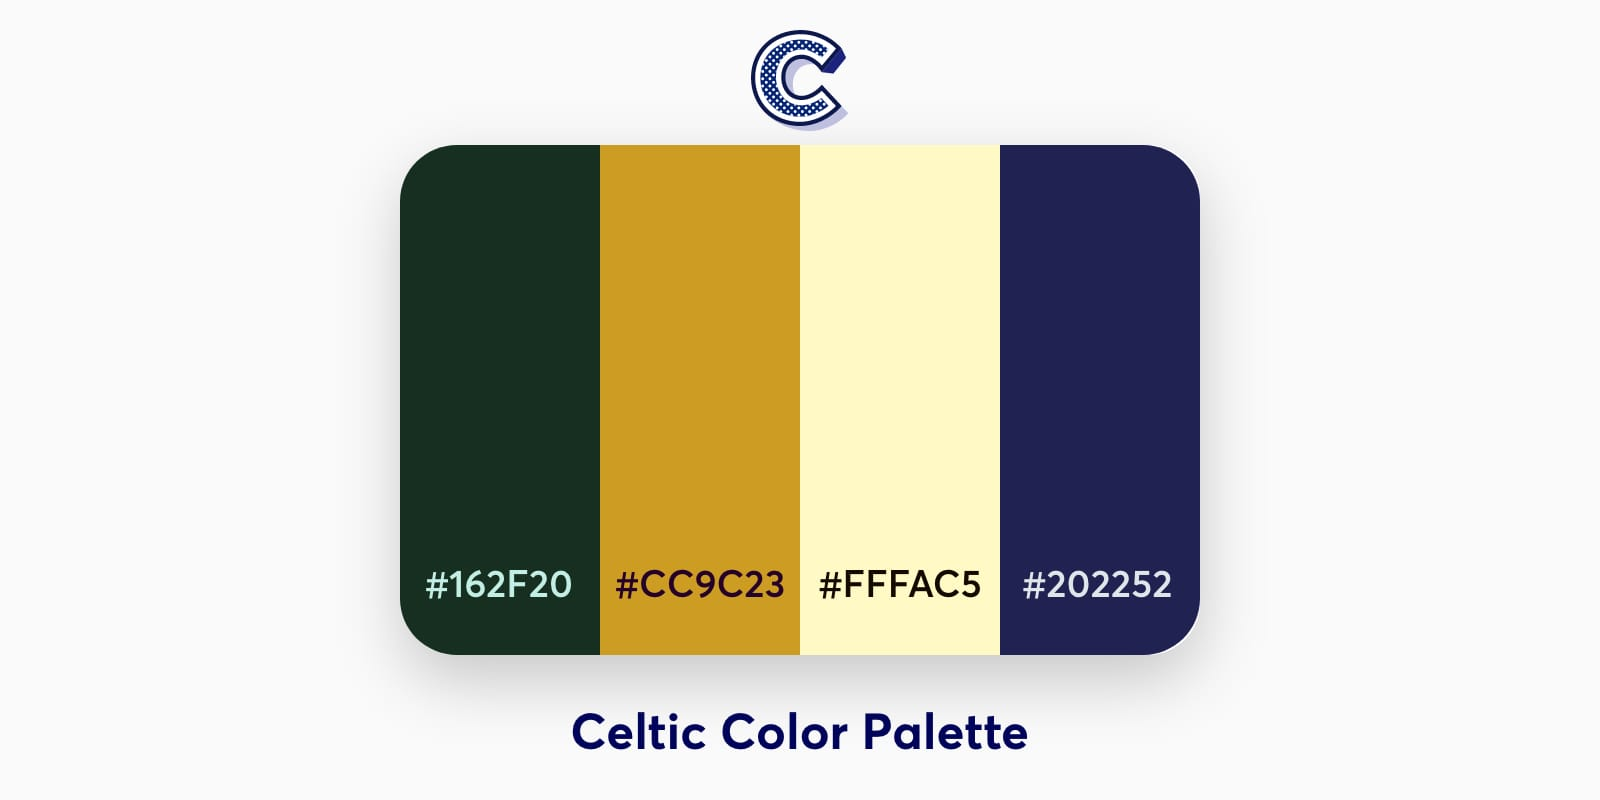 the featured image of celtic color palette